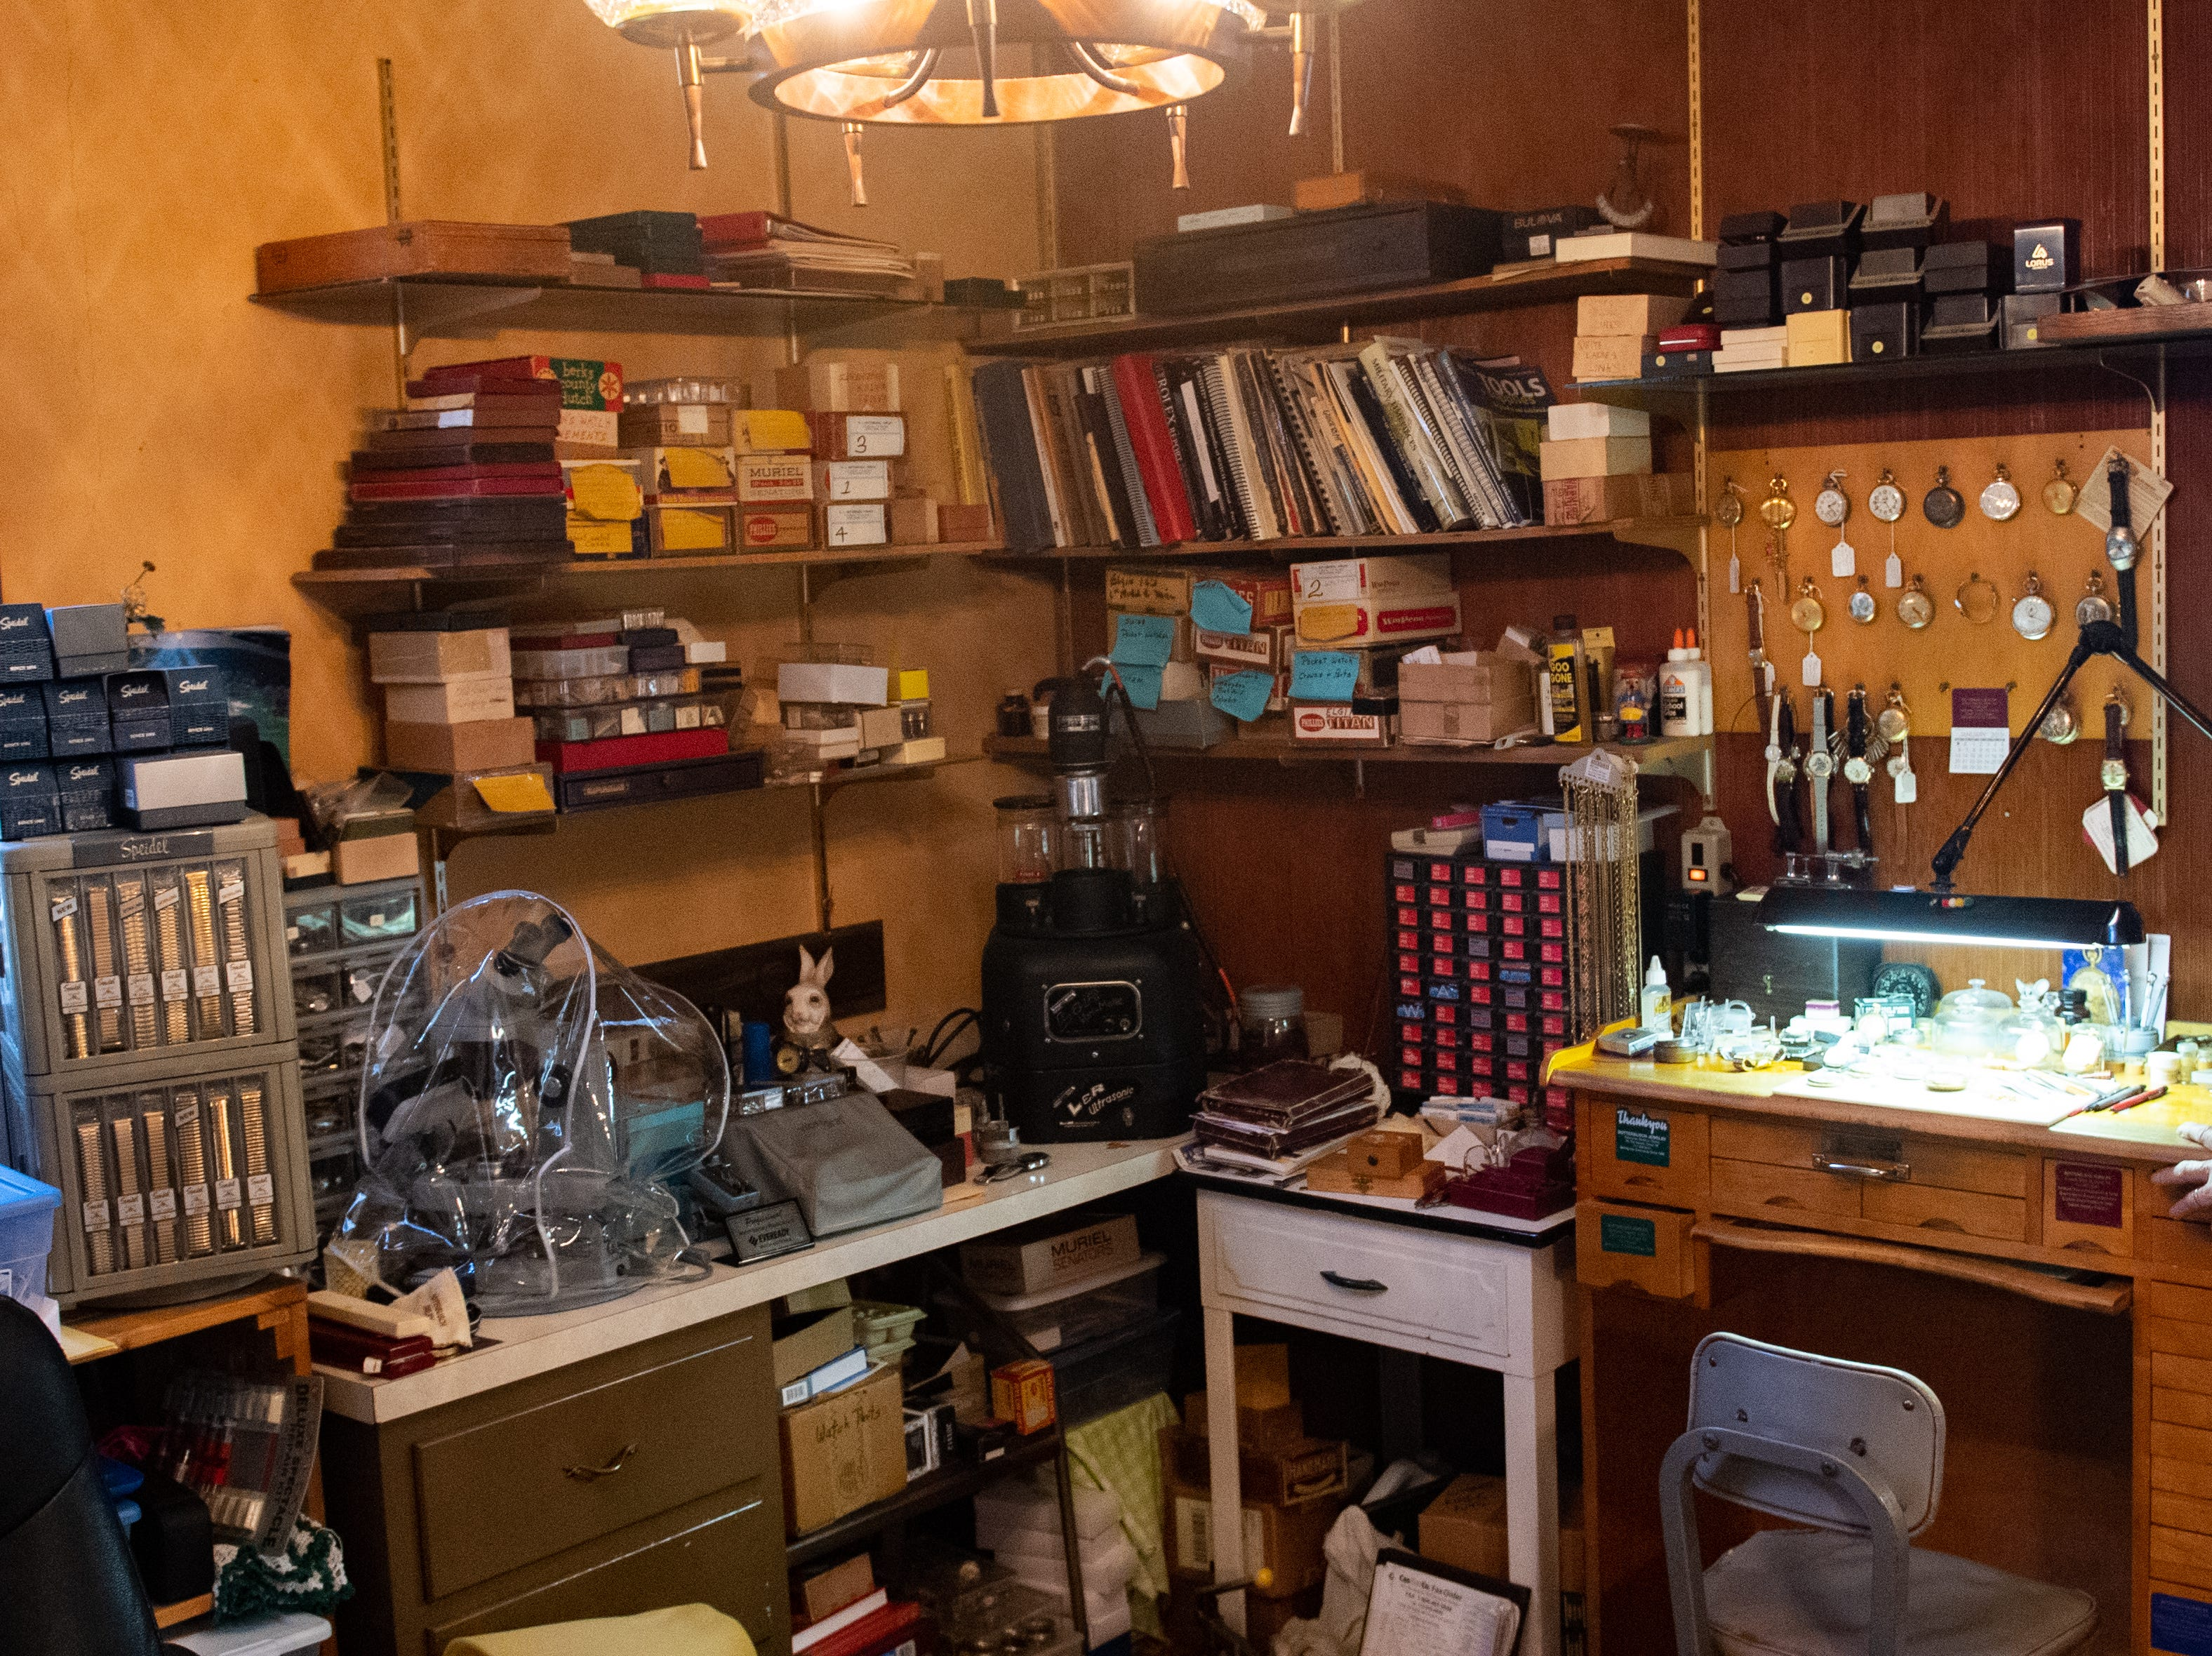 This is the work space next to Ronald Botterbusch's desk, January 30, 2019.